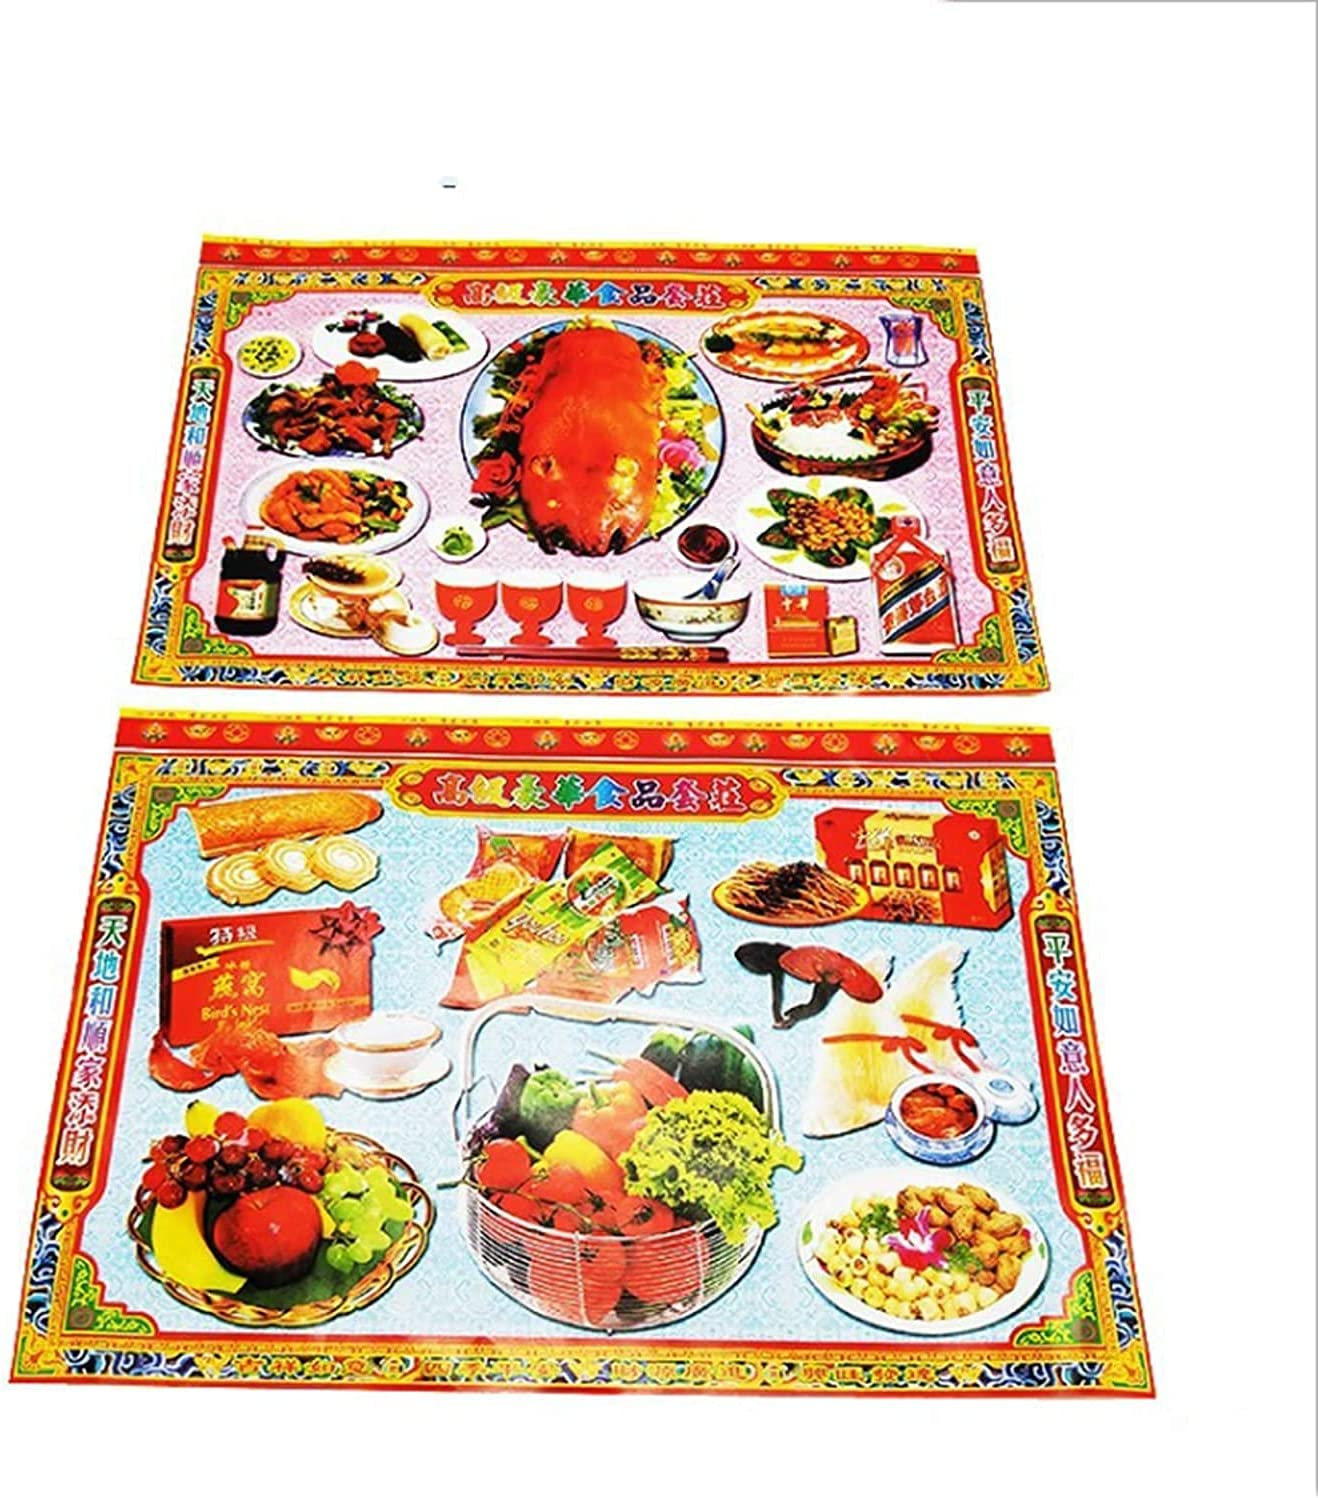 ZHANGQQ Ancestor Money Chinese offerings Funeral Recommendation Supplies B Food wholesale